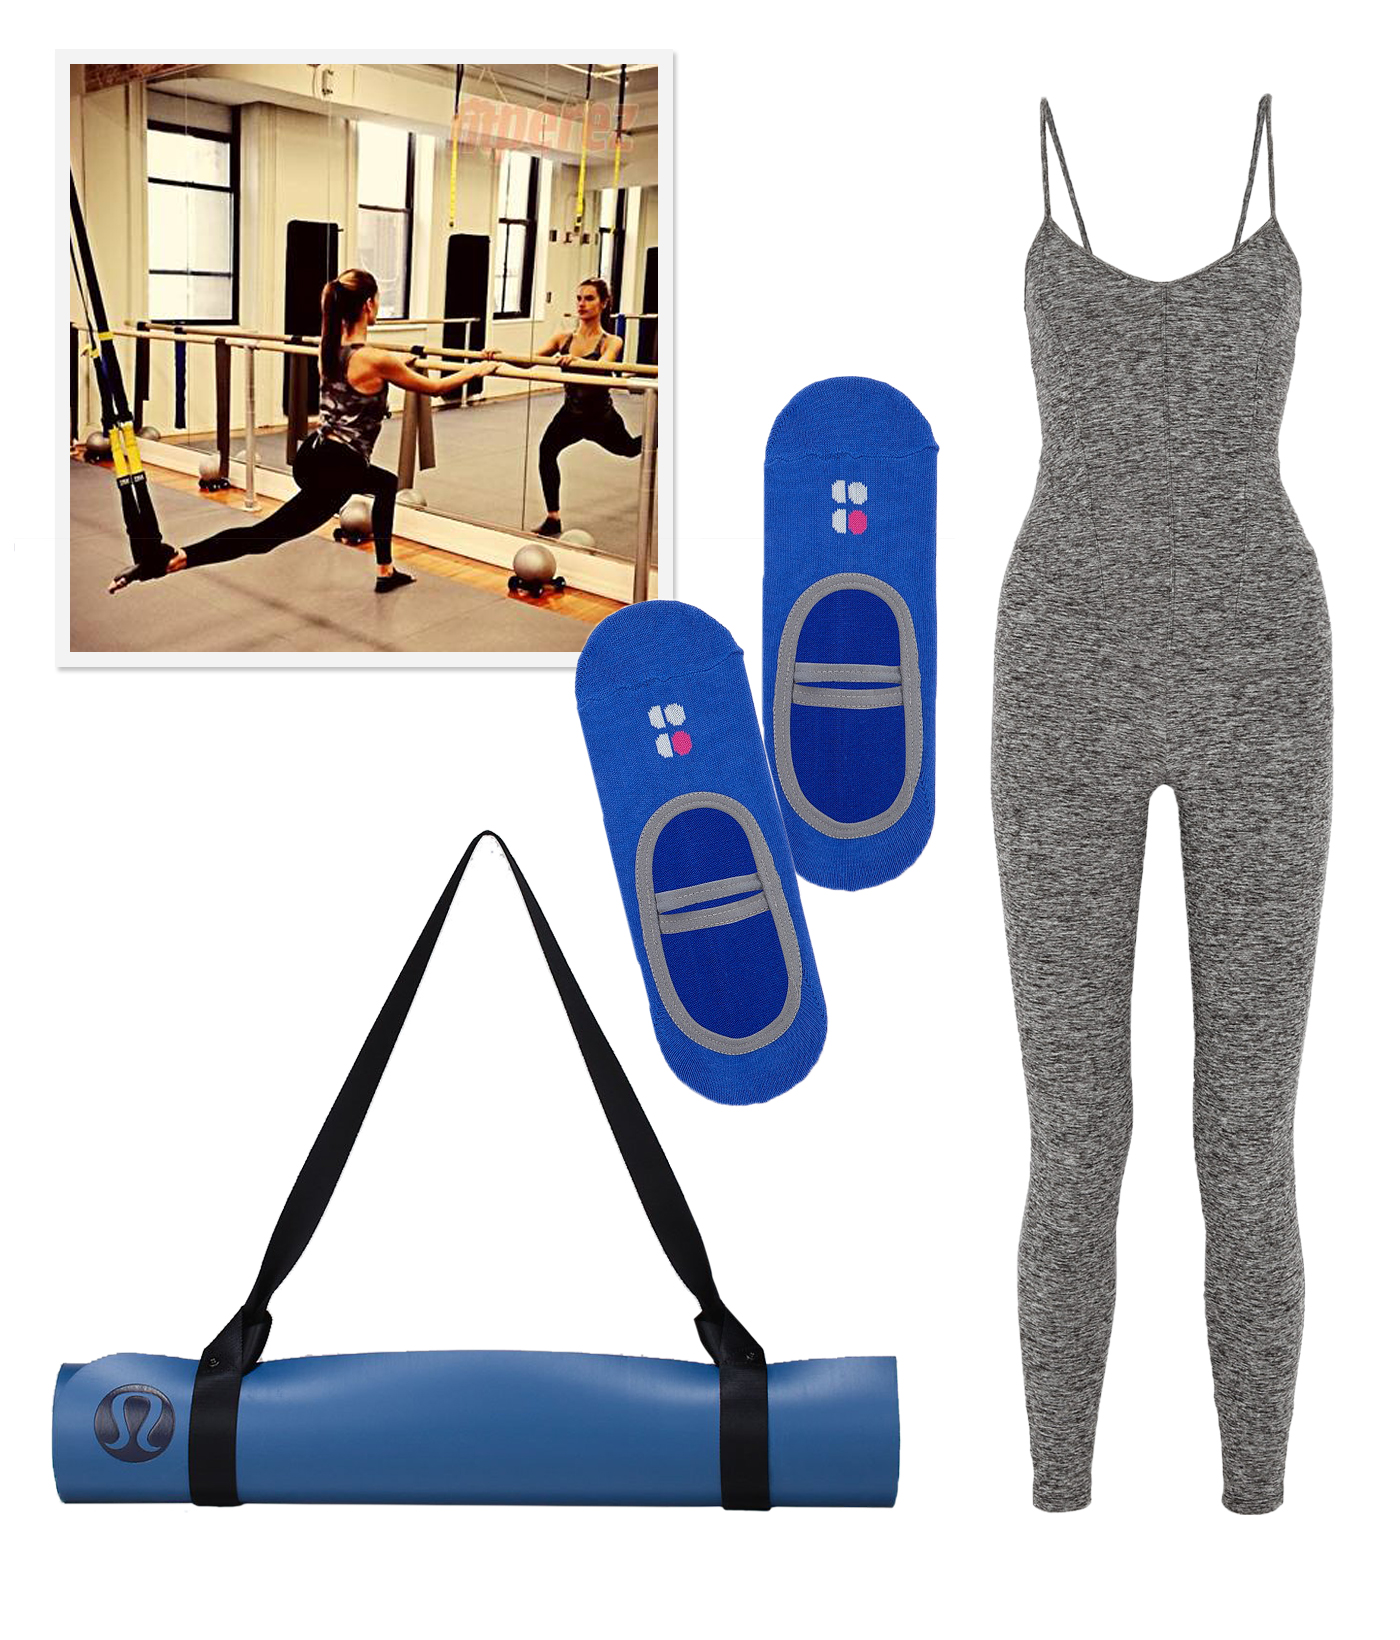 new-years-resolution-workout-gear-09.jpg